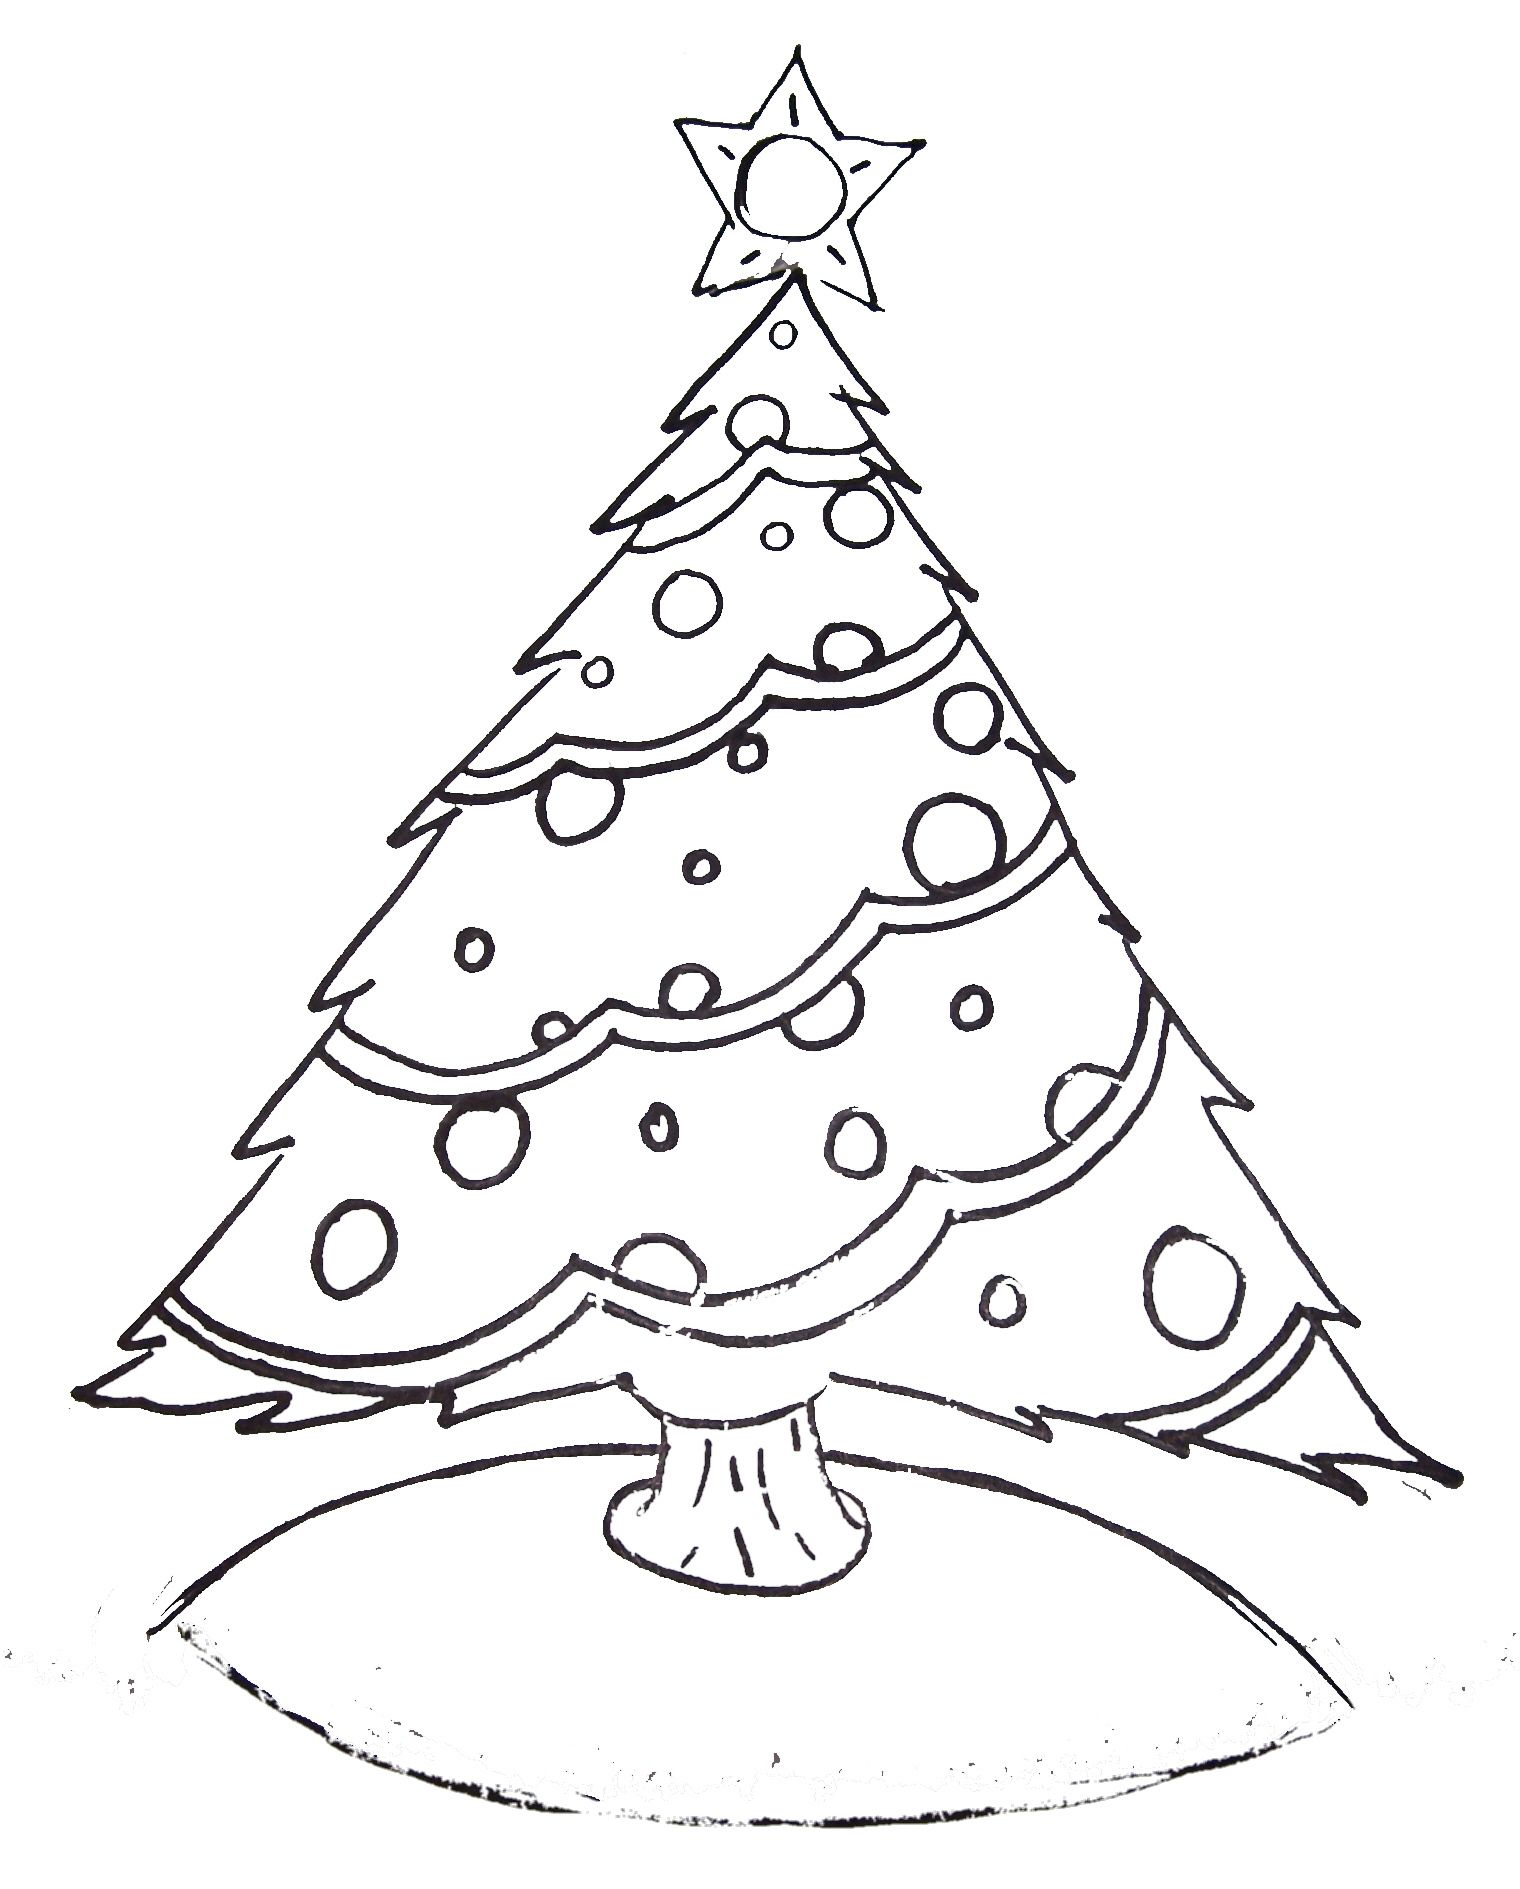 Free Printable Christmas Tree And Santa Coloring Pages Santa Coloring Pages Christmas Tree Coloring Page Tree Coloring Page